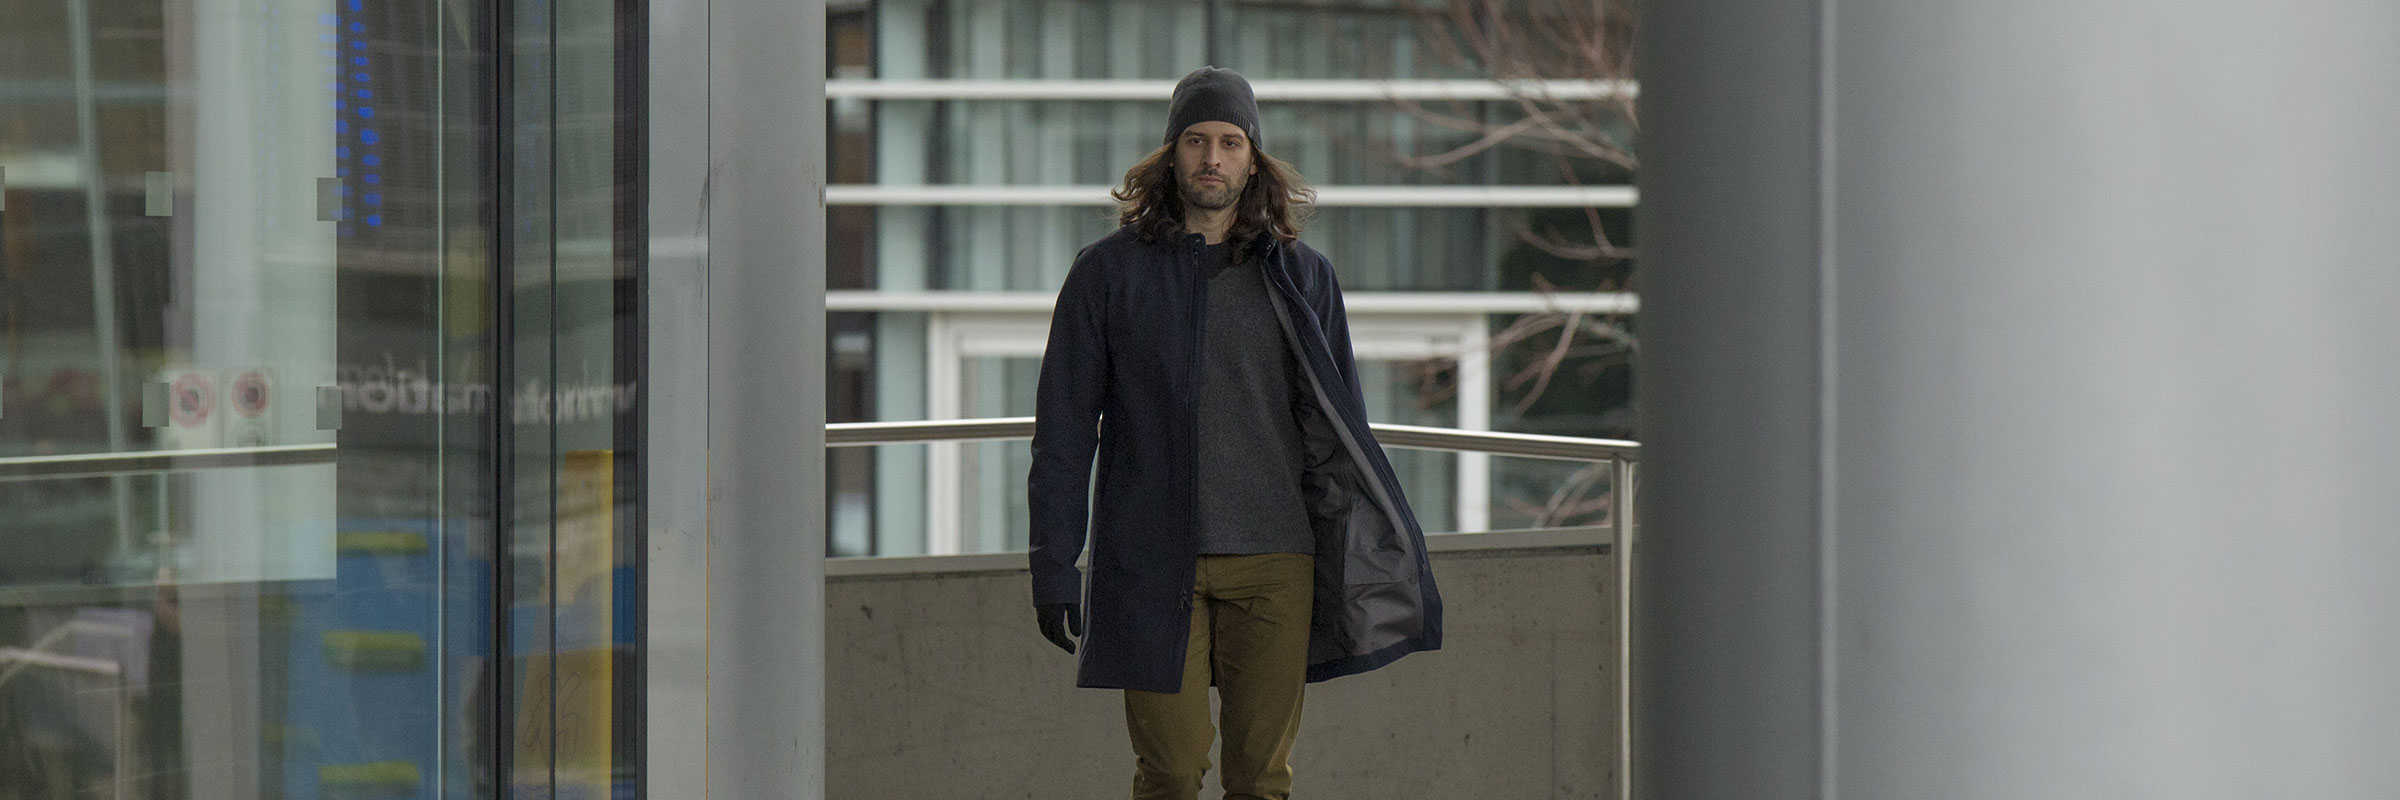 Arc'teryx, Winter, winter jackets. Discover the Arc'teryx Urban Winter Jacket Collection for Men